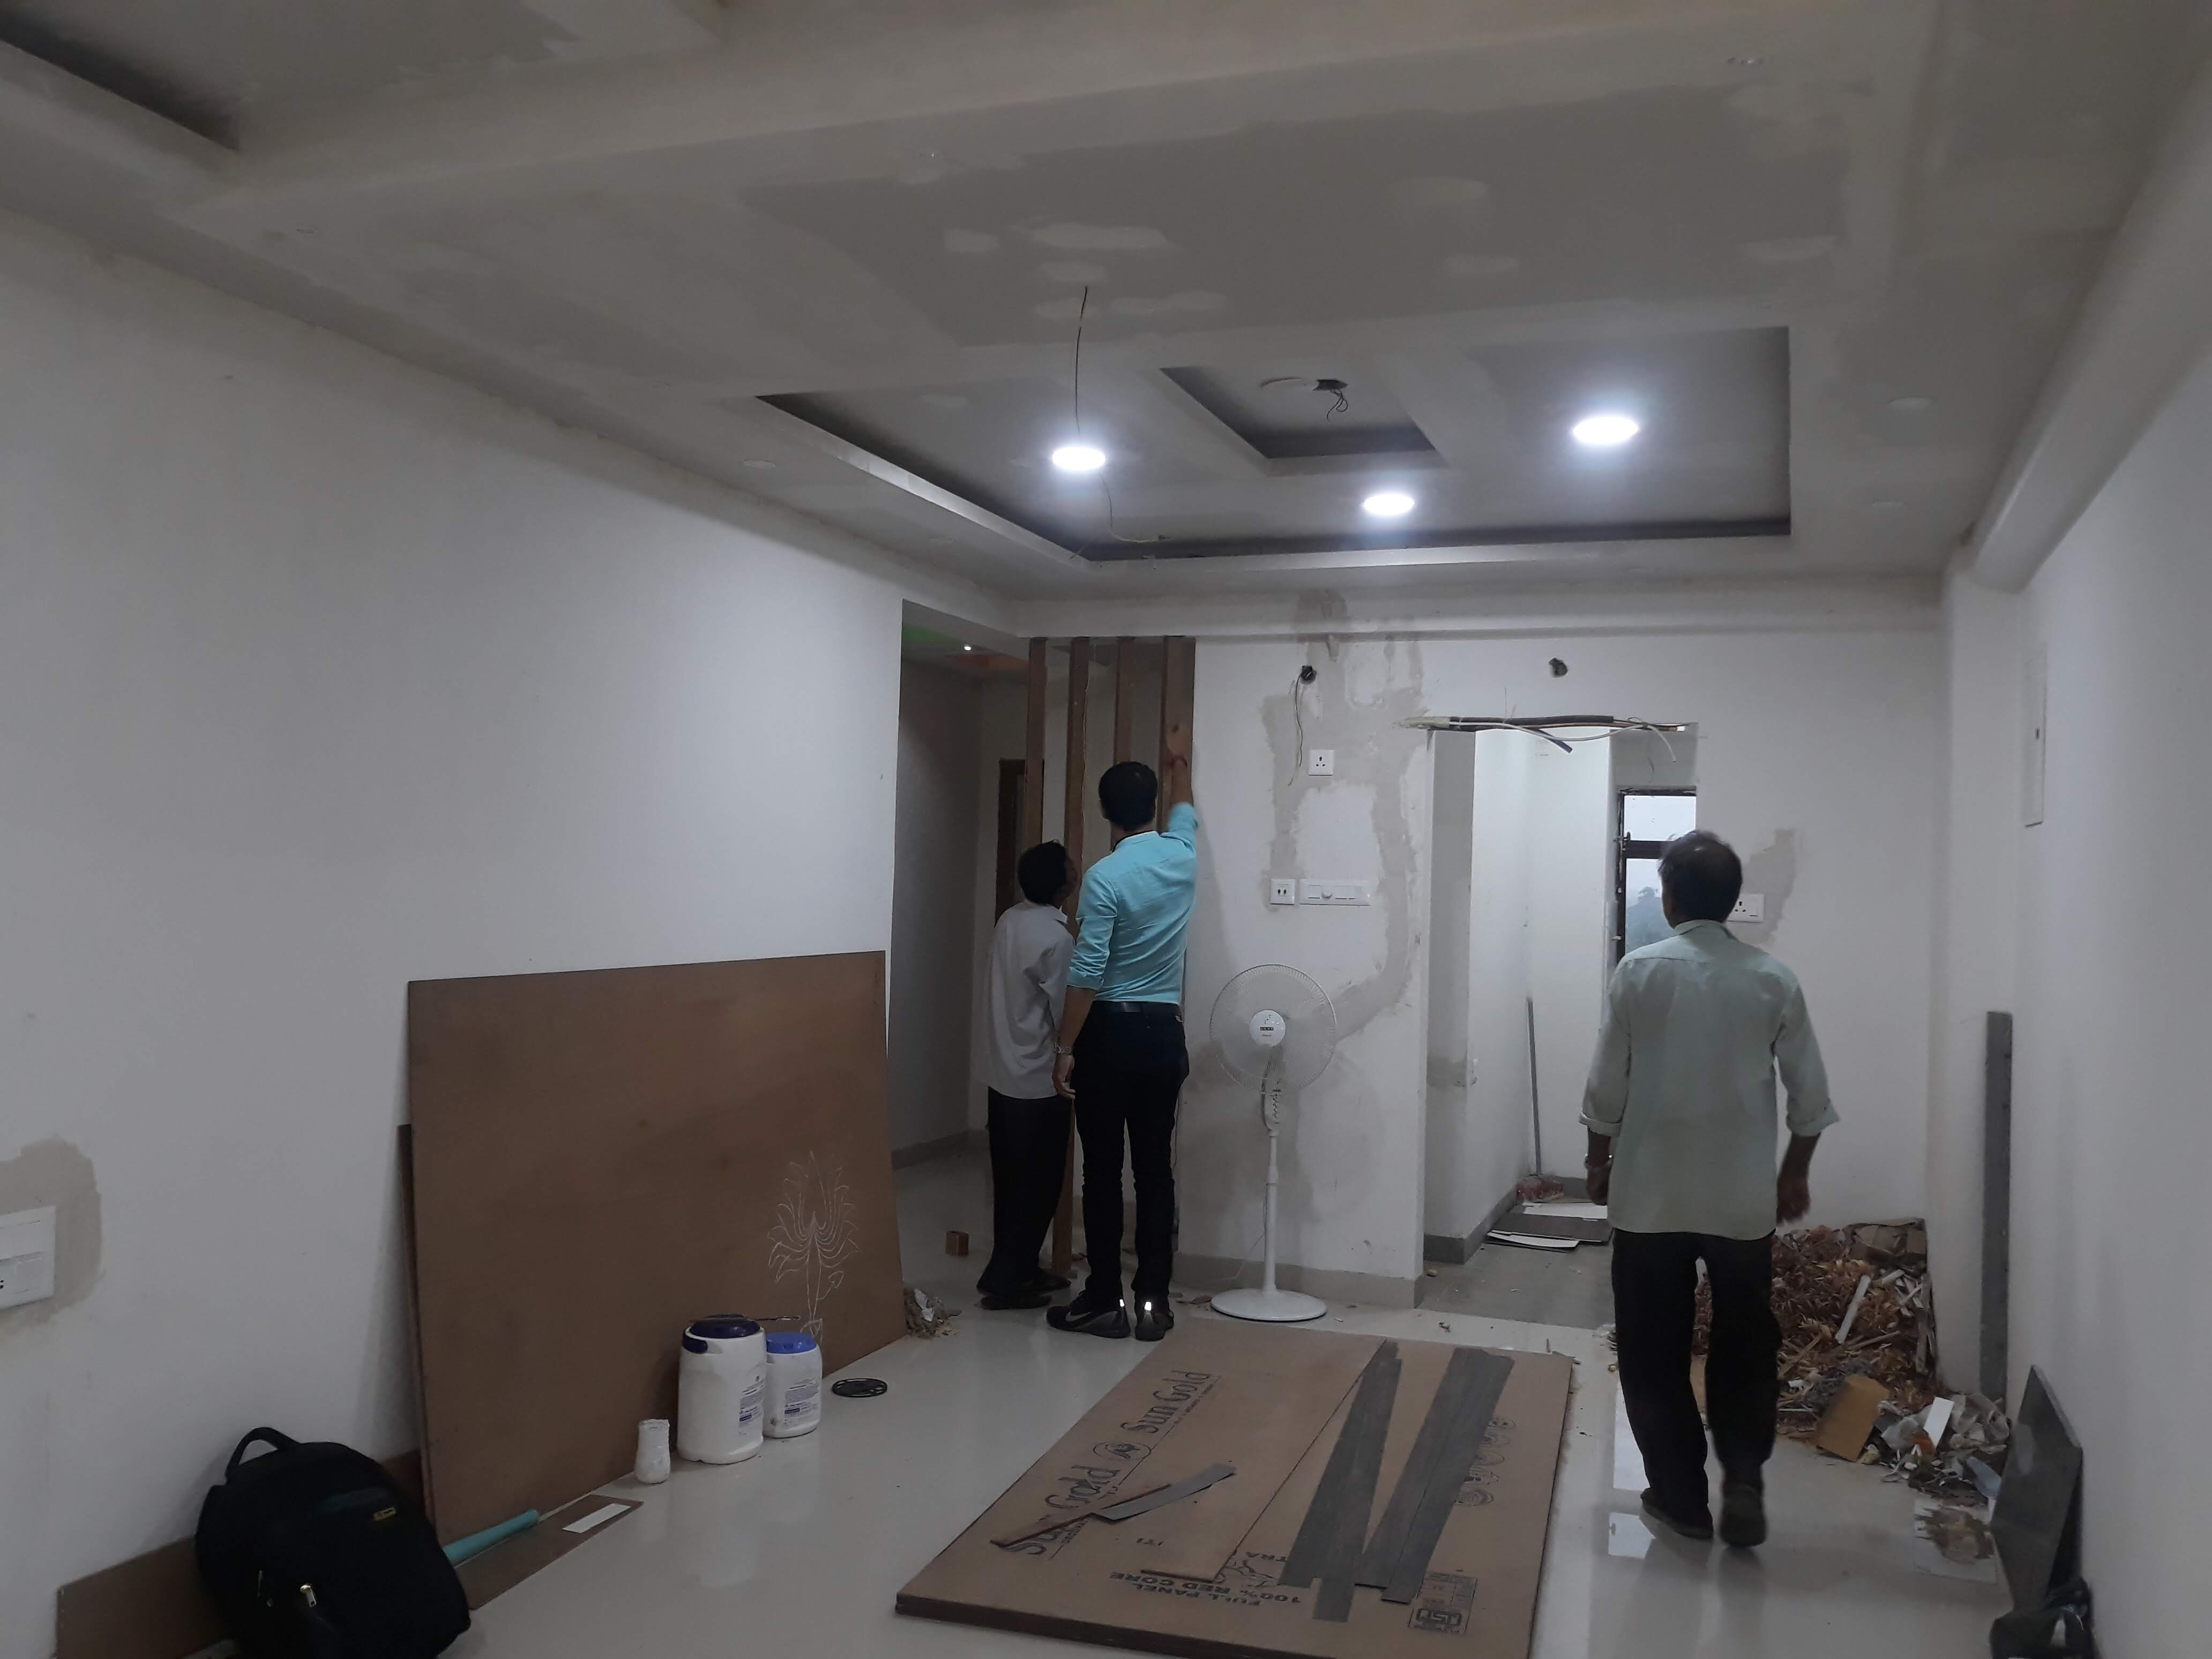 interior decoration for droing room , interior design servic, drowing room Falsceiling design,